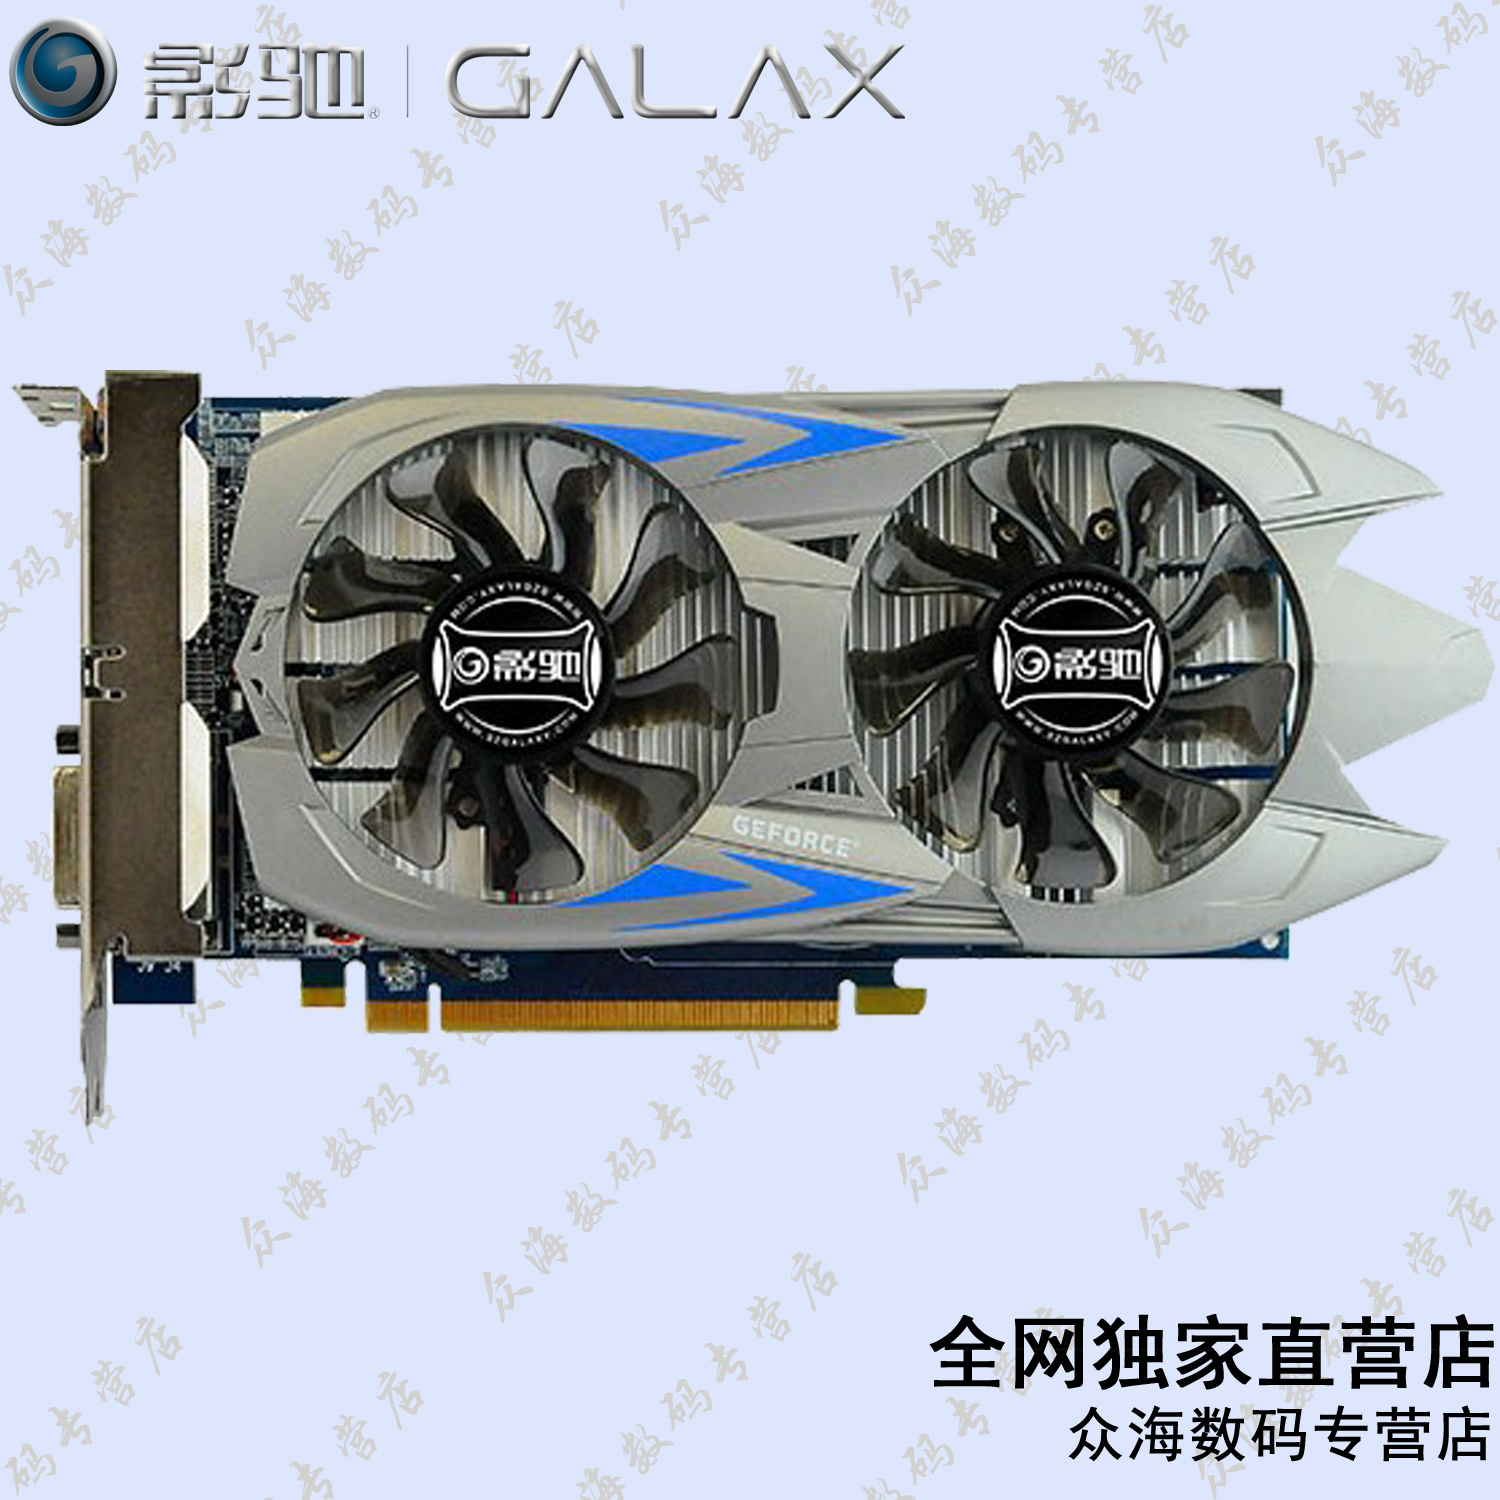 Galaxy/galaxy gtx750ti general version 2g/128bit graphics card game gift gifts